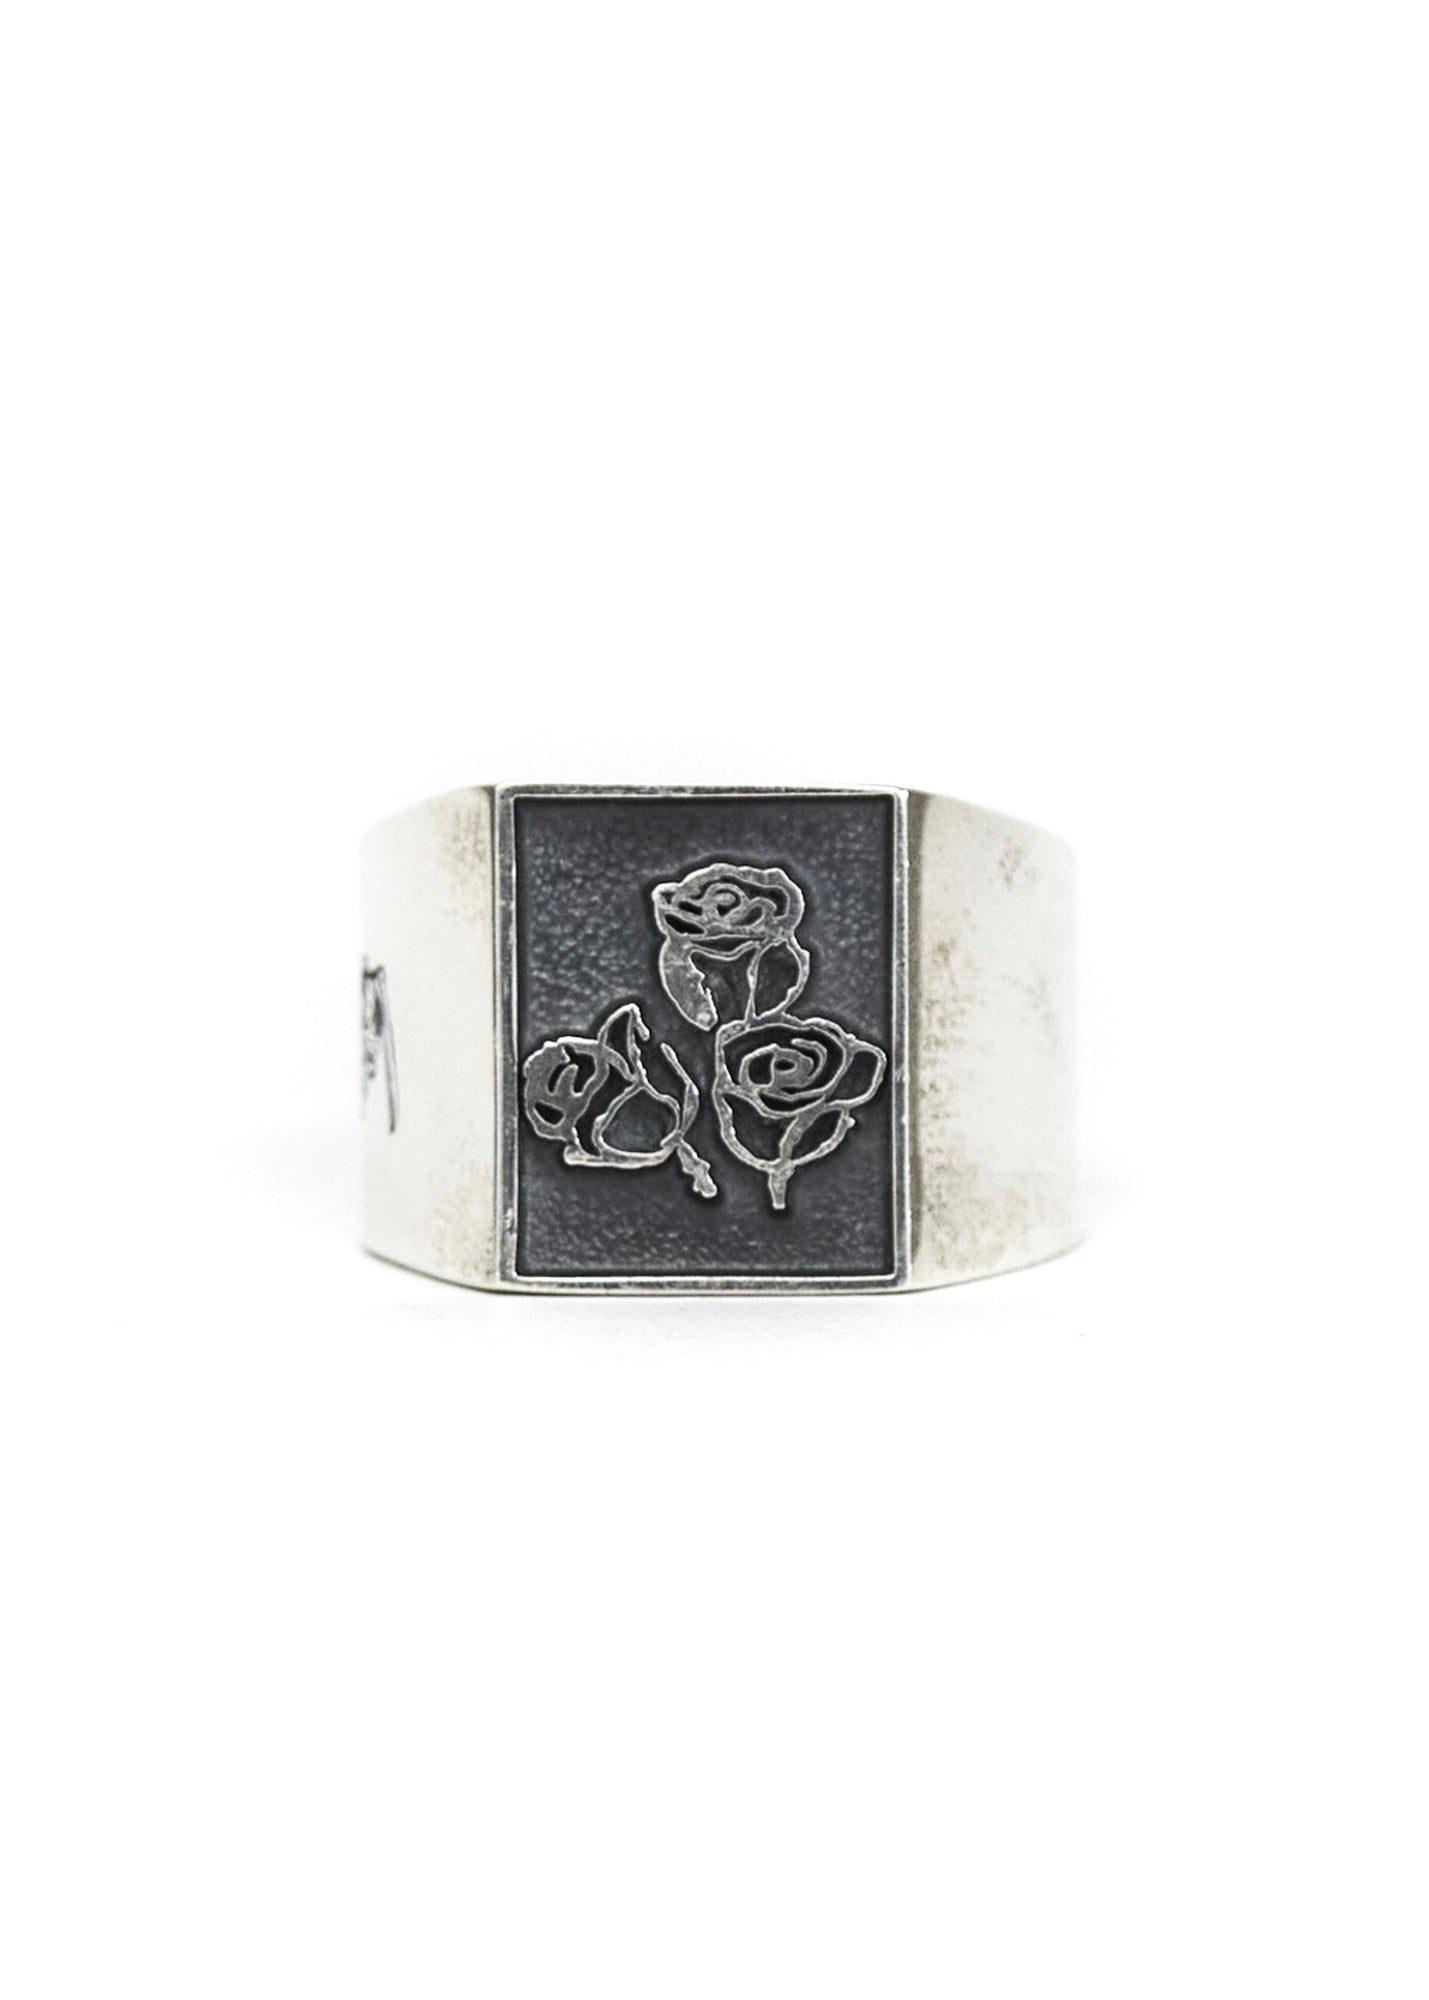 Sketchy Rose Silver Ring